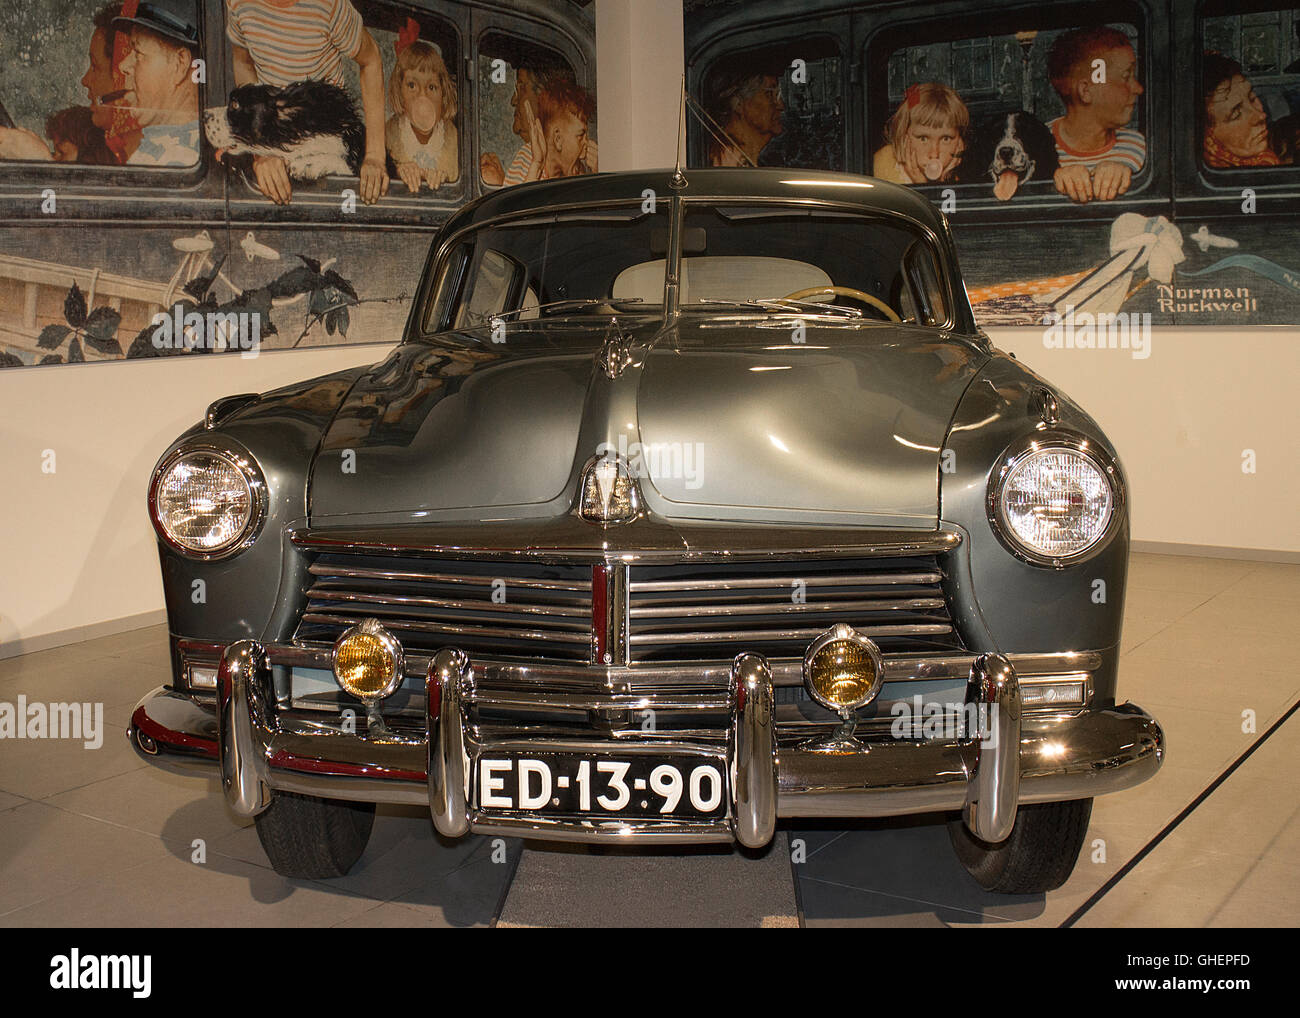 A 1948 Hudson Commodore 8 at the Louwman Museum, The Hague, Netherlands Stock Photo